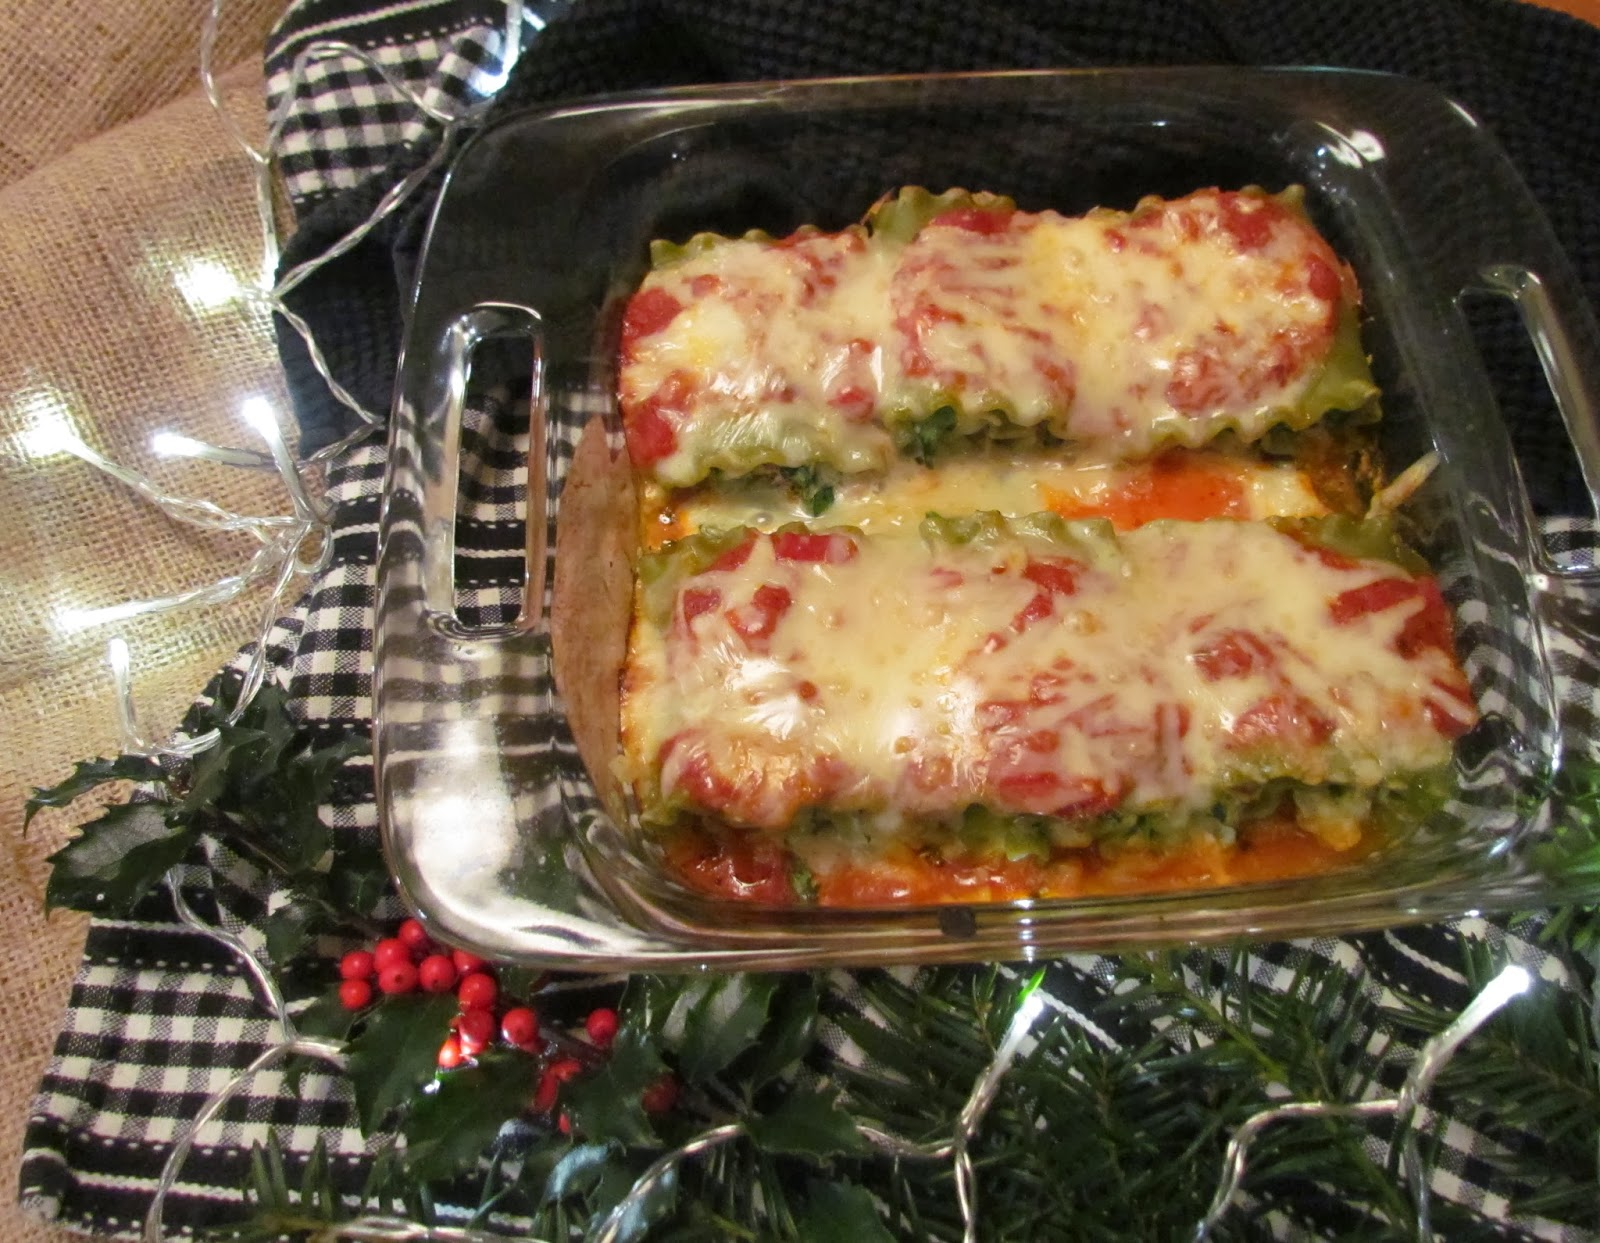 ... & Roses: Lasagna Rolls with Turkey, Sun Dried Tomatoes and Spinach